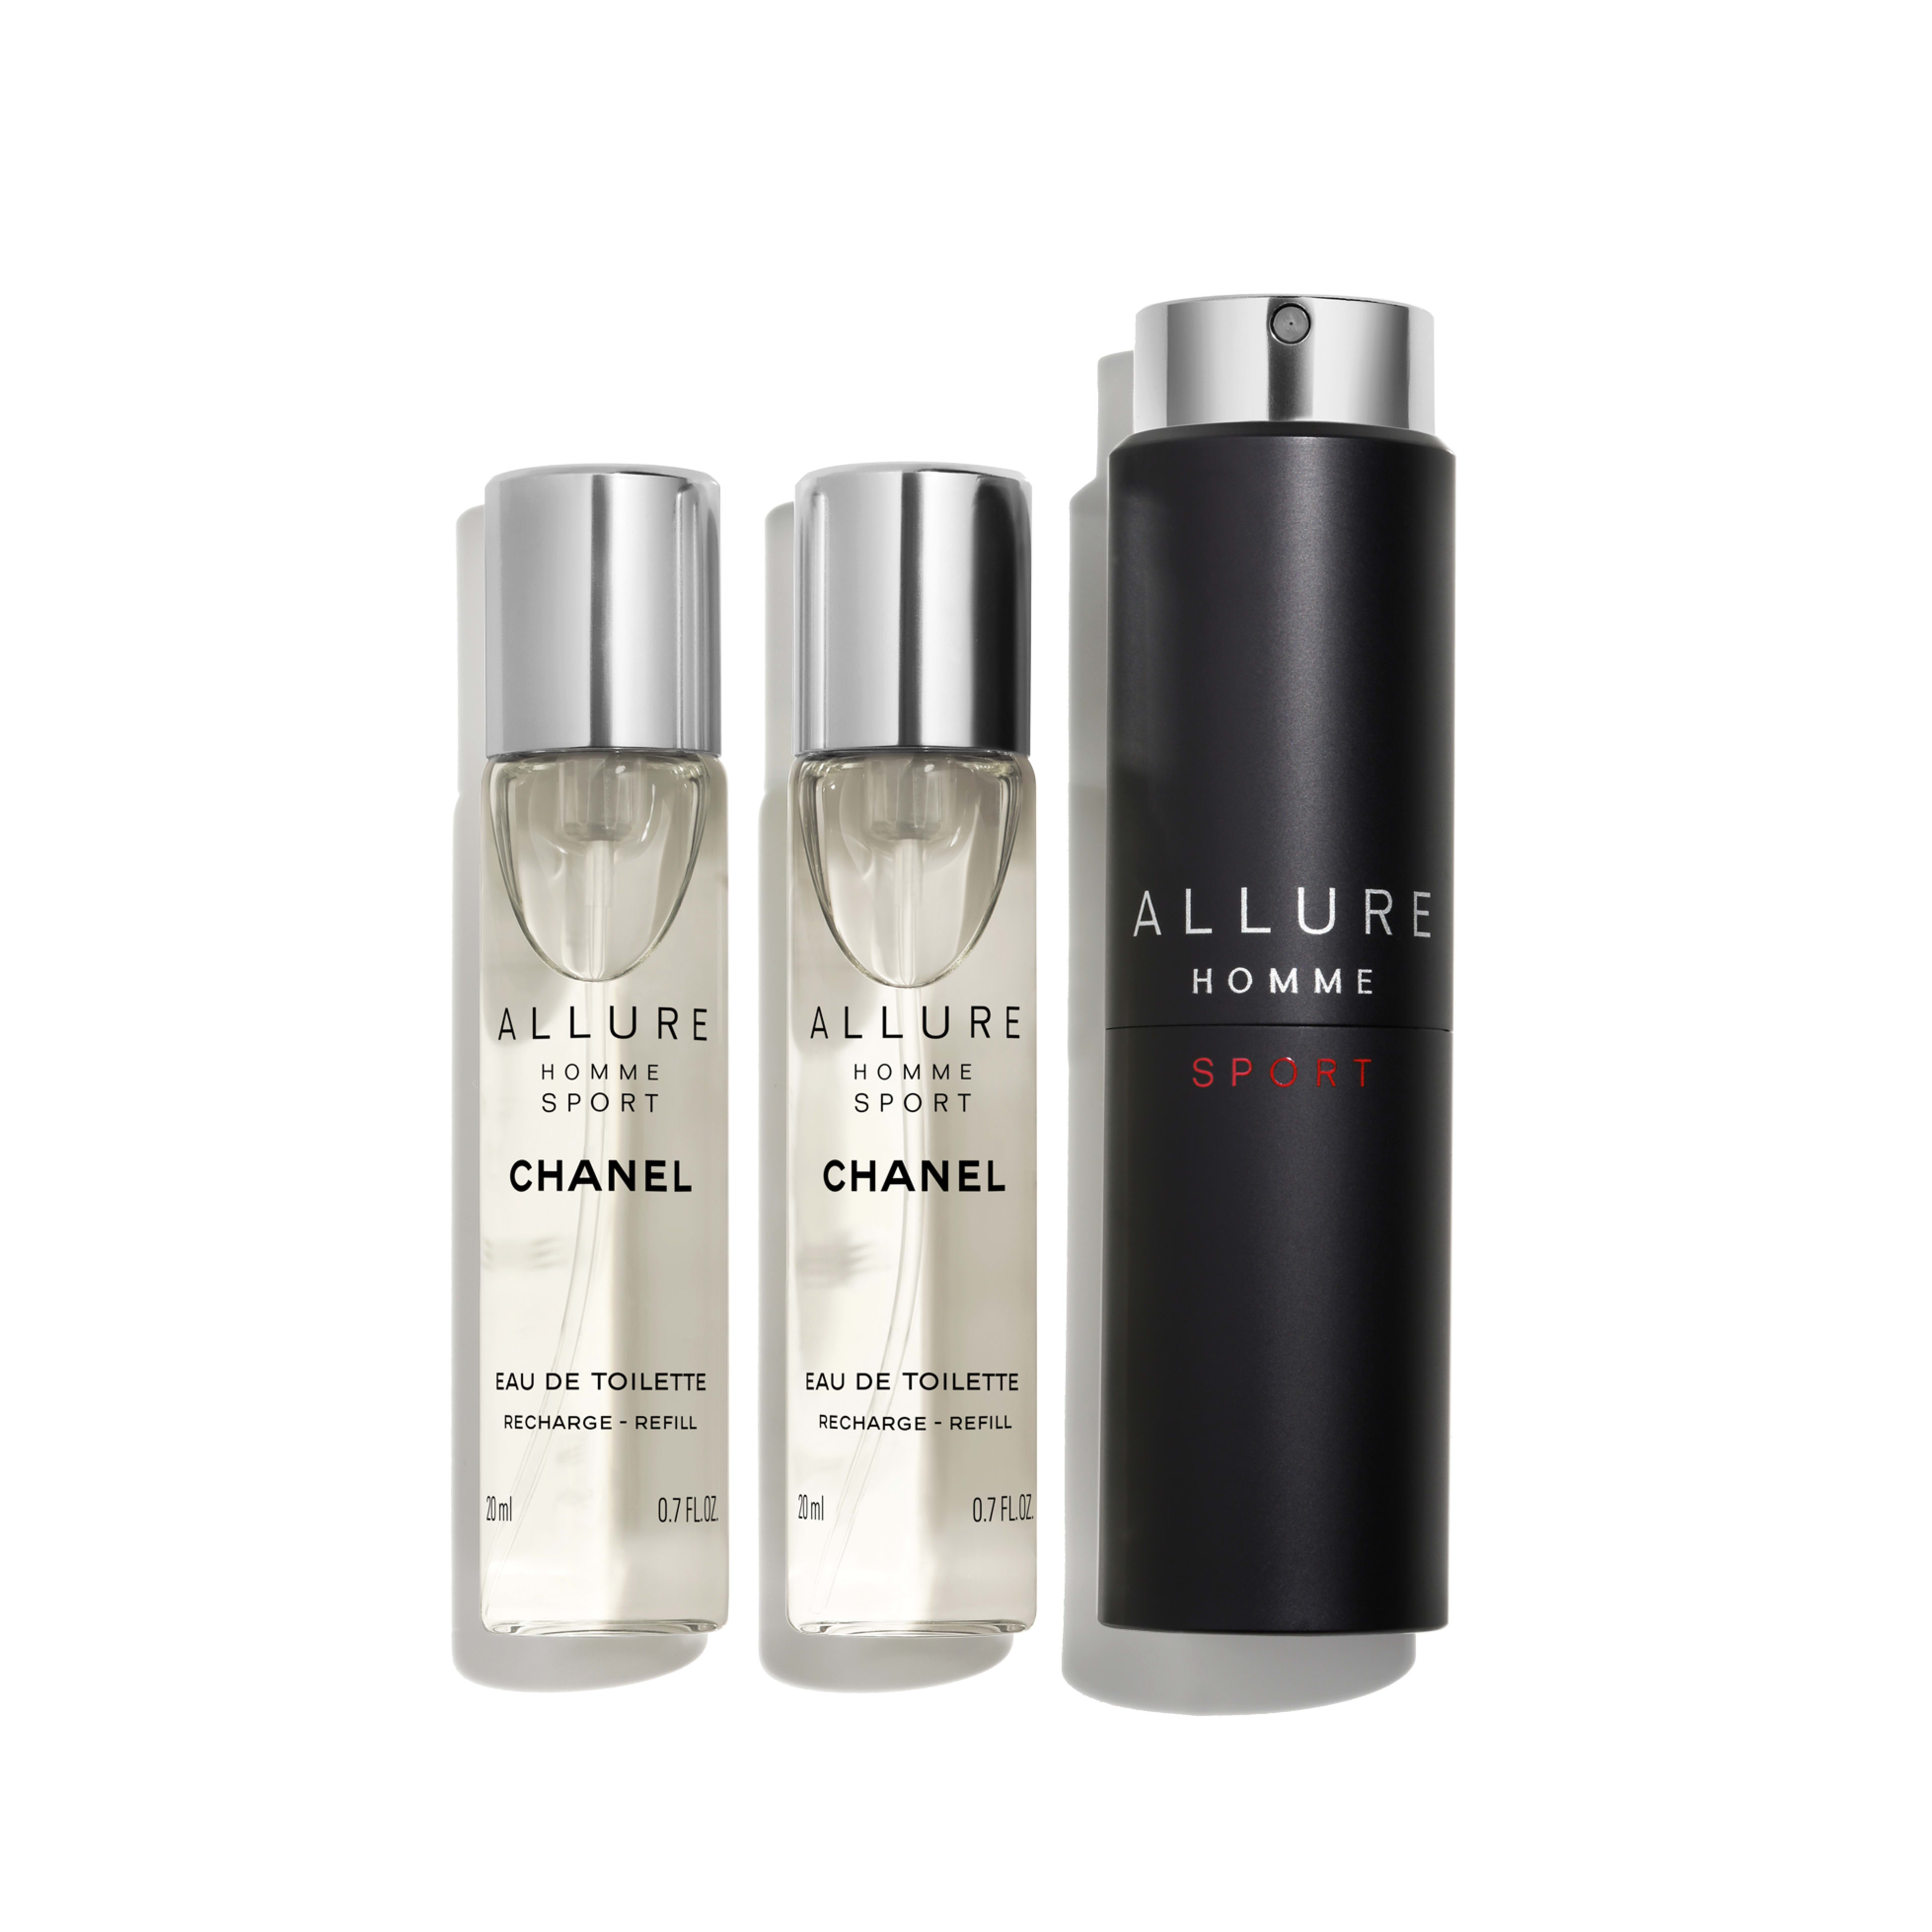 ALLURE HOMME SPORT - fragrance - 3 x 0.7FL. OZ. - Default view